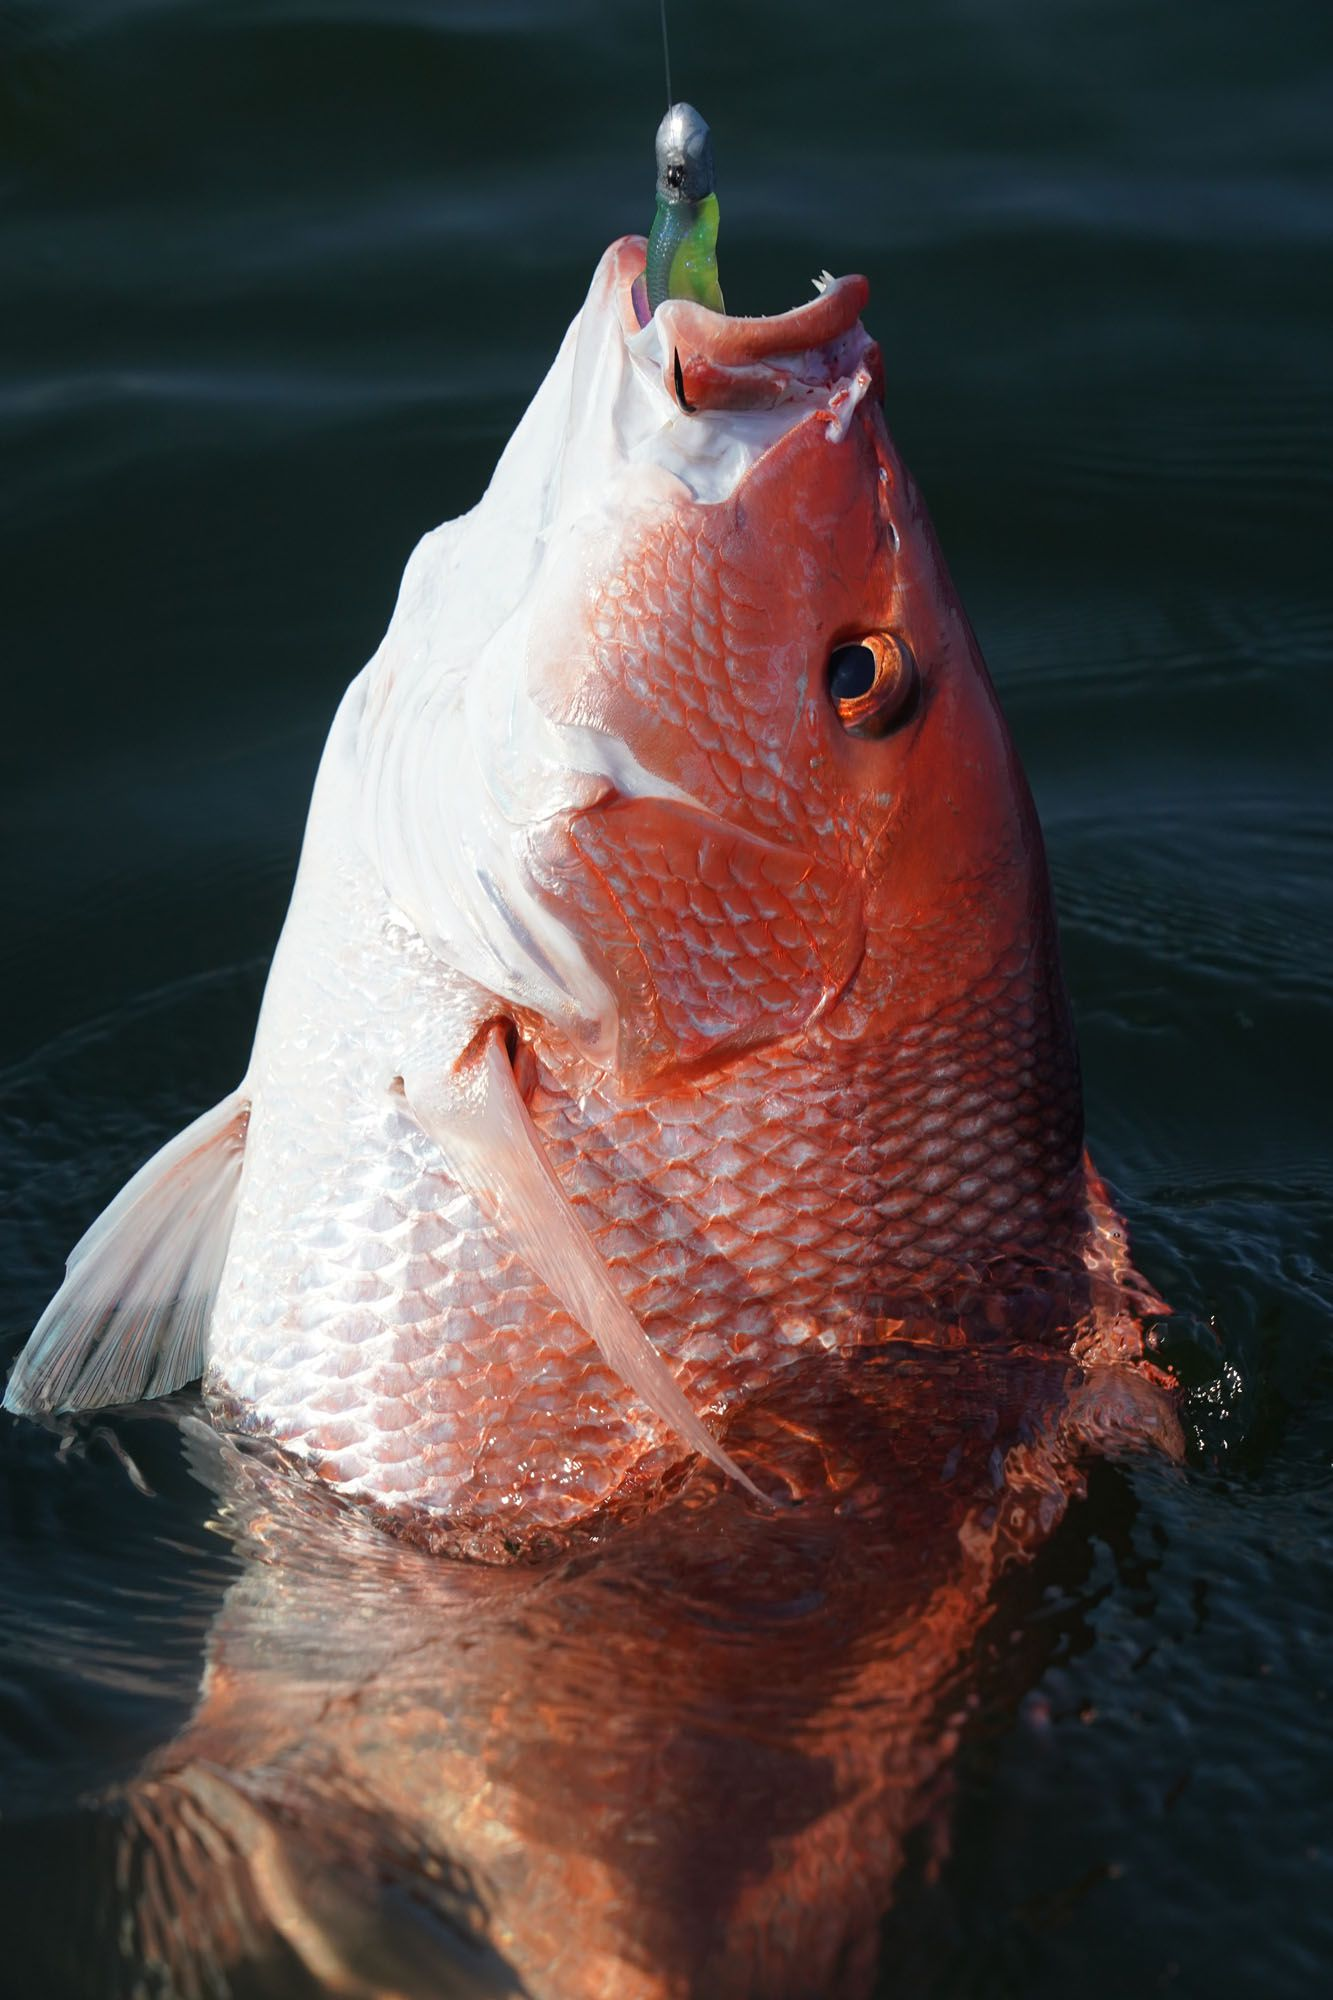 The next day, we continued to whack the red snapper, which definitely took a shine to these lures.